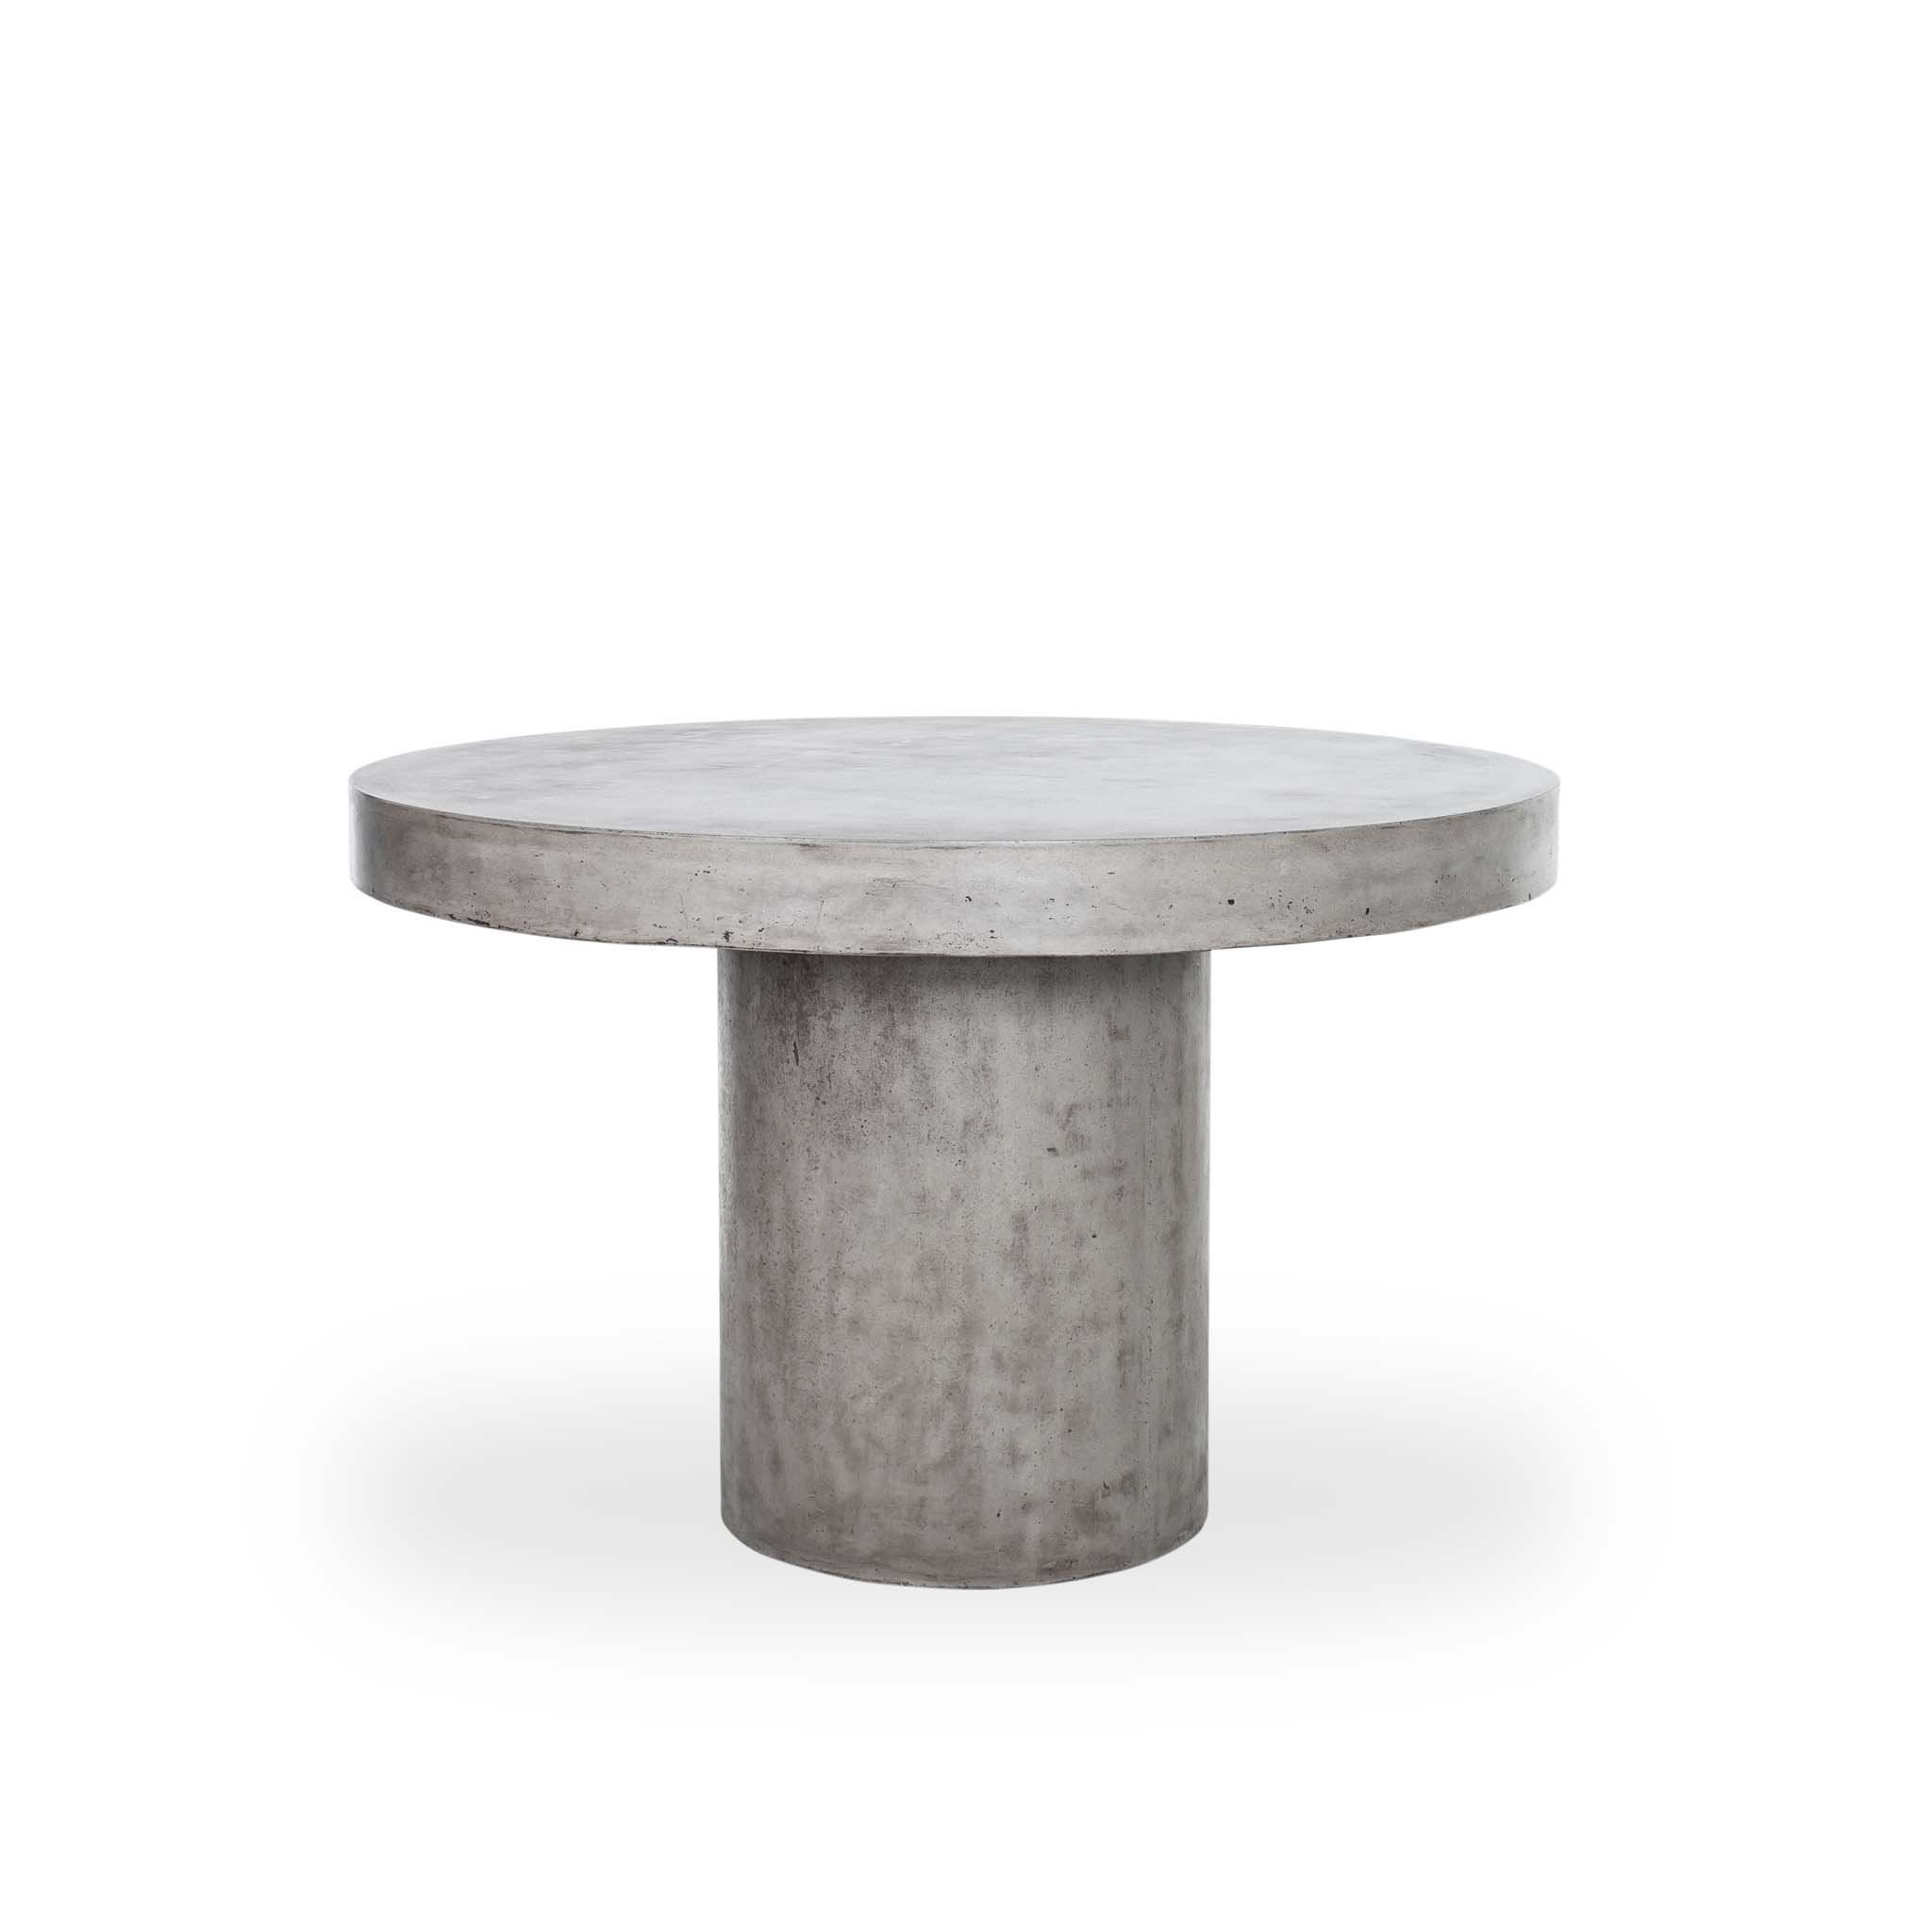 Cassius Outdoor Dining Table Concrete Outdoor Dining Table